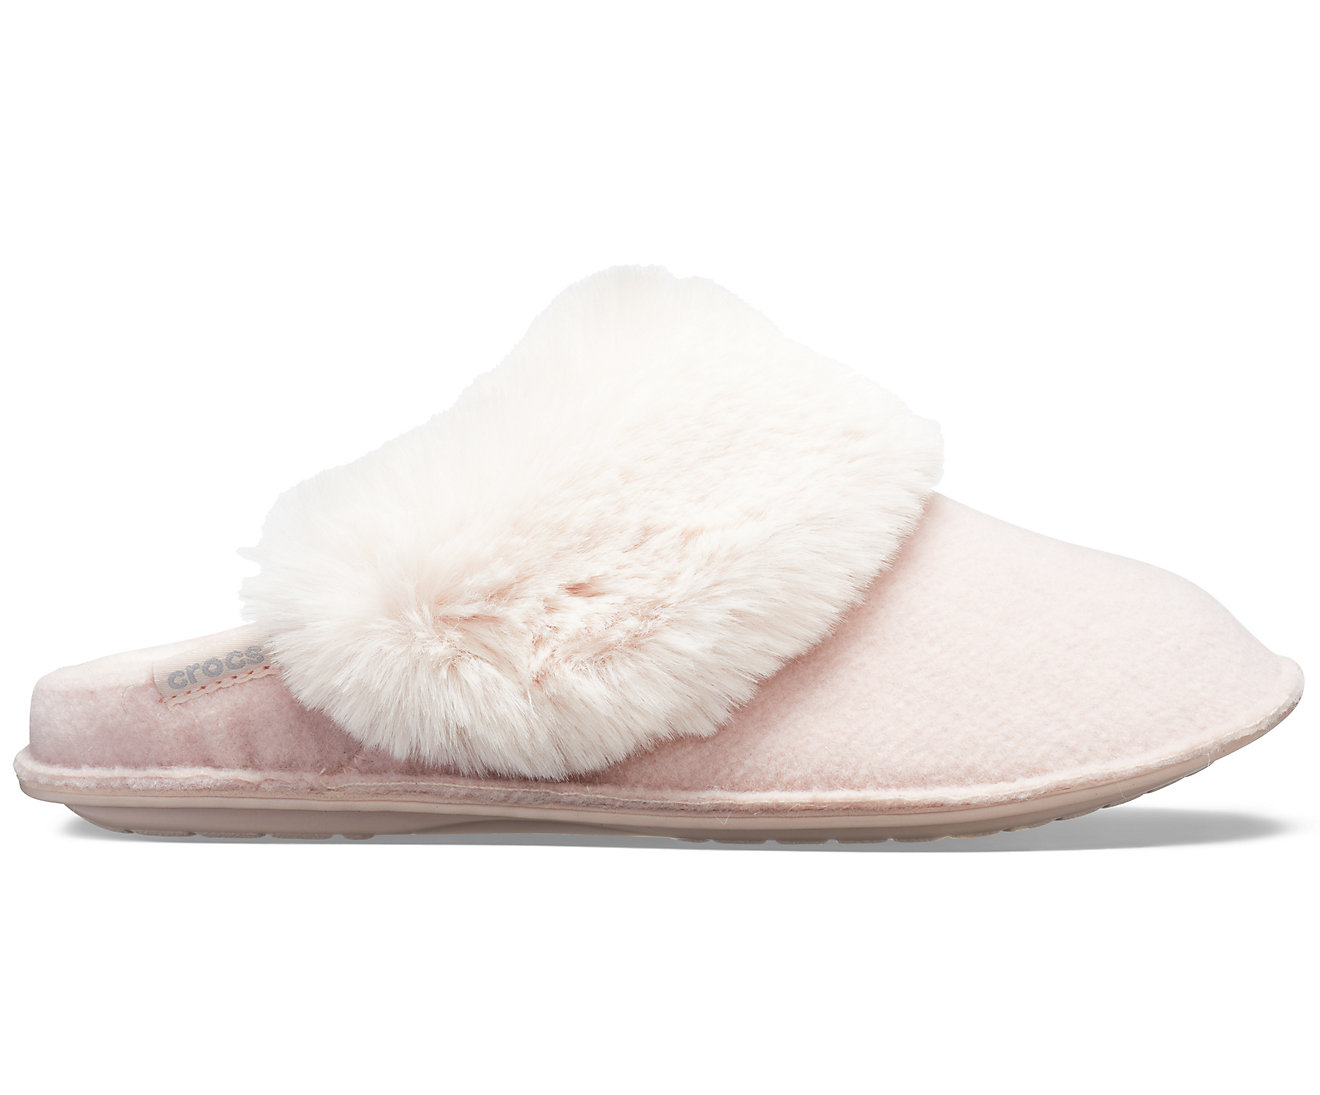 Crocs otthoni púder papucs Classic Luxe Slipper Rose Dust - Női Cipők ♥  Differenta.hu 86bbeccdd0